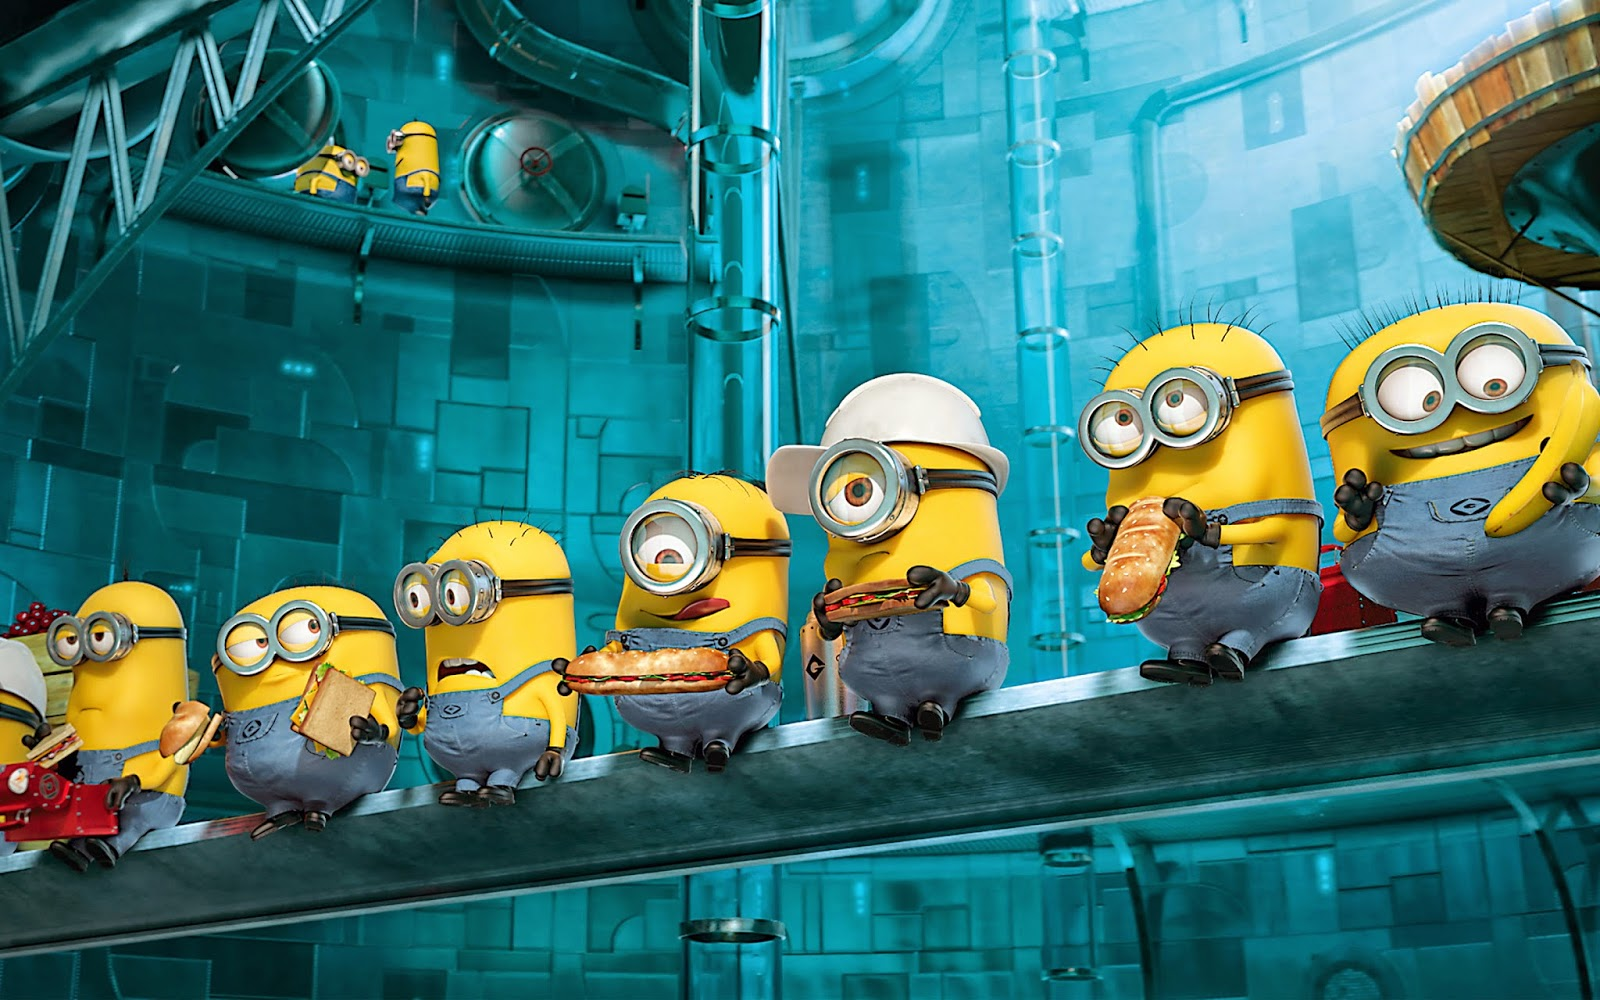 the-best-cartoon-minions-wide-high-definition-for-desktop-background-wallpaper-image-free